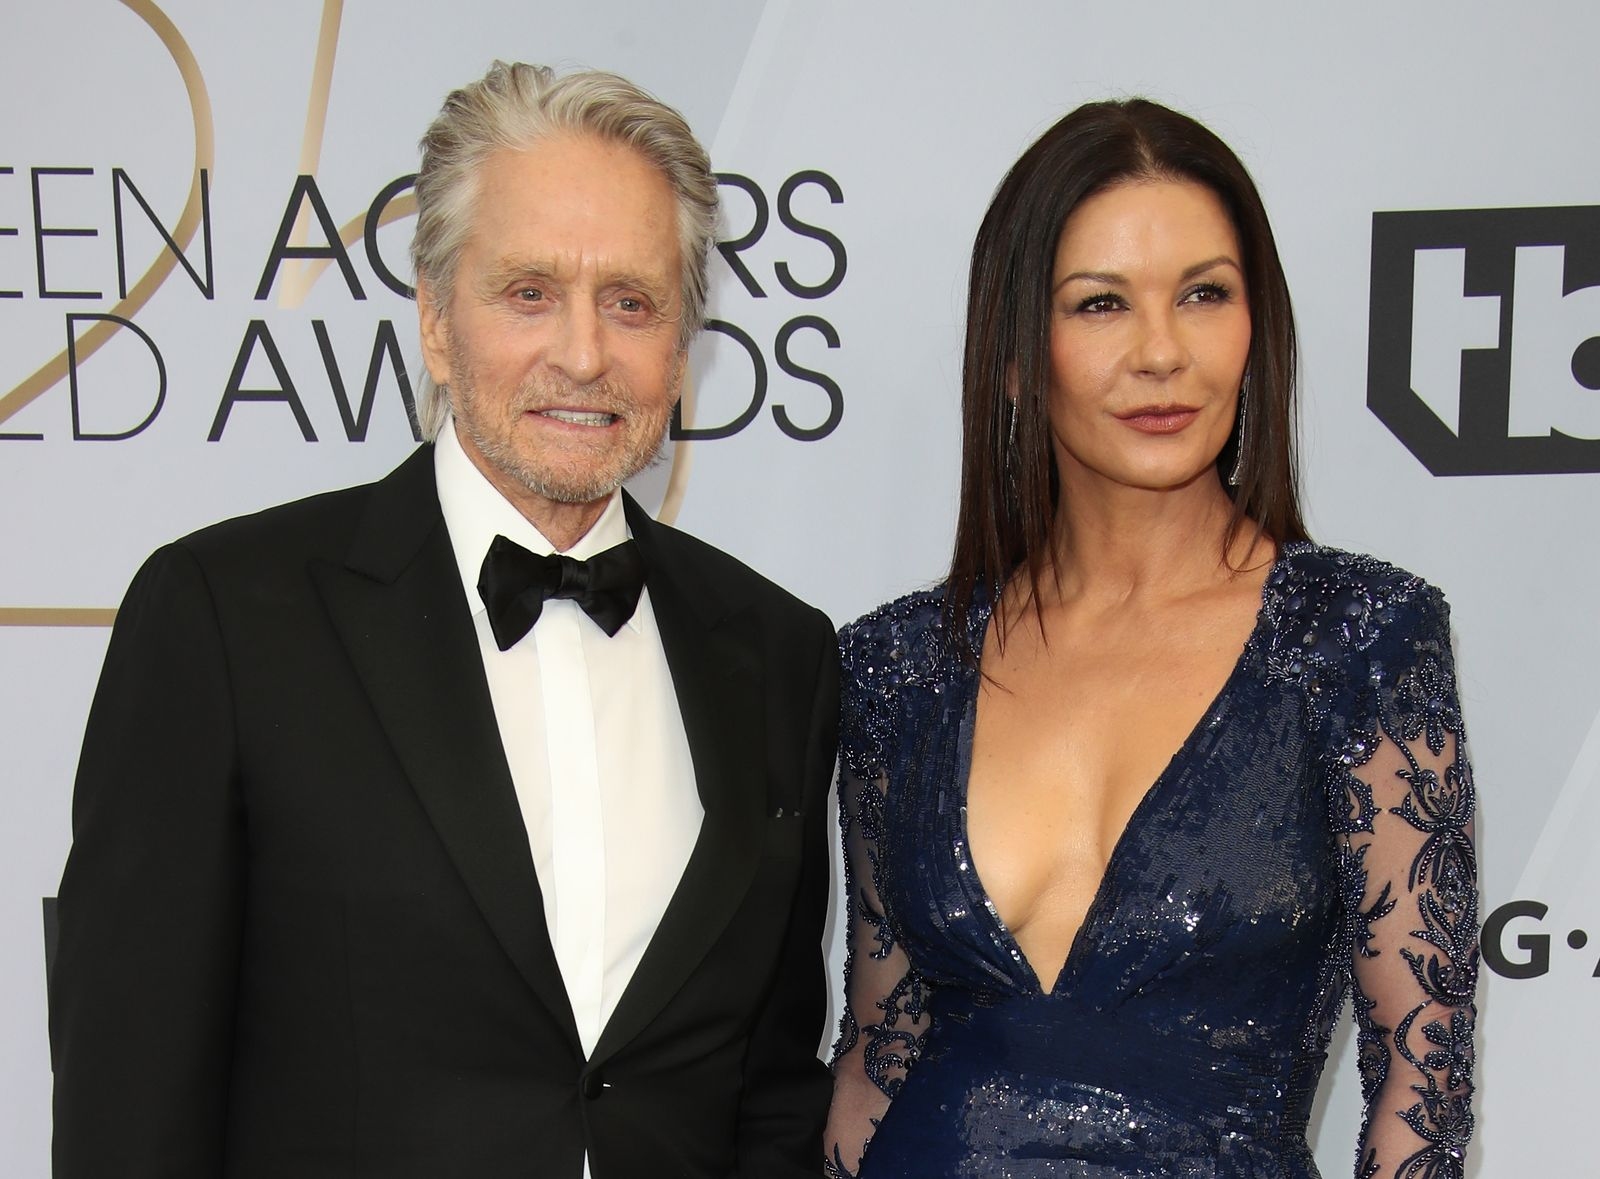 Michael Douglas and Catherine Zeta-Jones at the 25th Annual Screen Actors Guild Awards at The Shrine Auditorium on January 27, 2019 | Photo: Getty Images